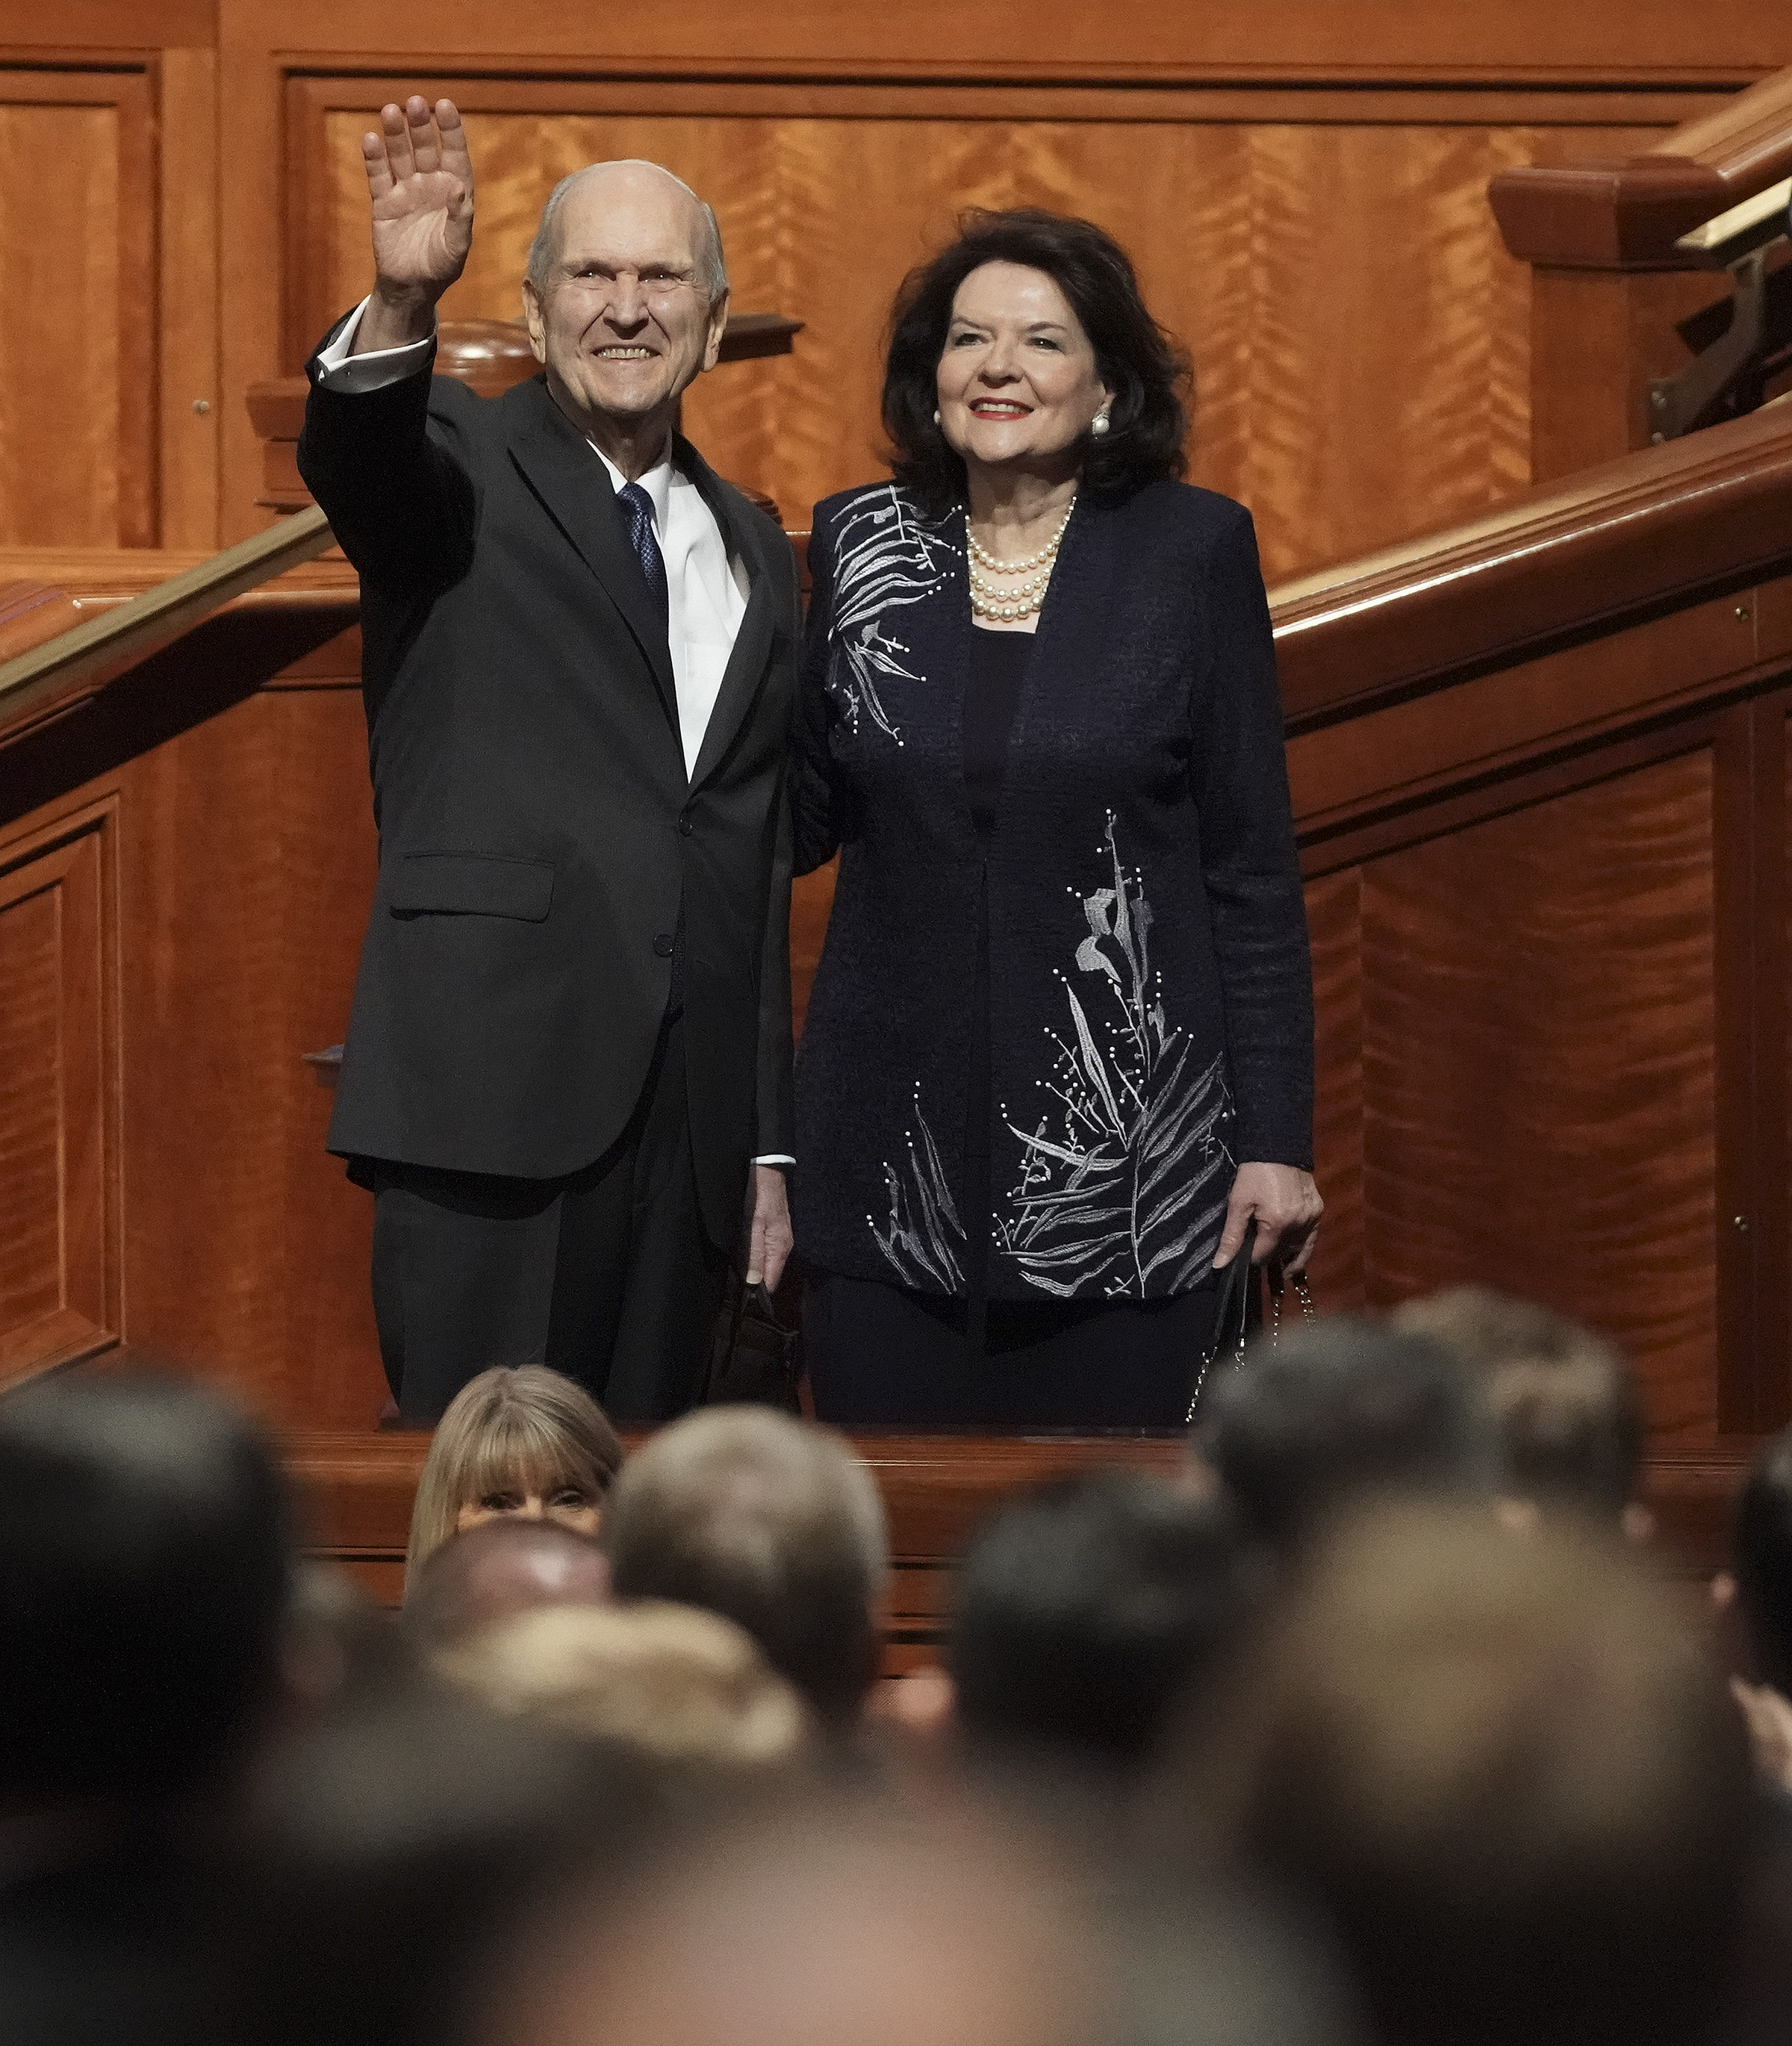 President Russell M. Nelson and his wife Sister Wendy Nelson wave to attendees after the Sunday morning session of the 189th Semiannual General Conference of The Church of Jesus Christ of Latter-day Saints in Salt Lake City on Sunday, Oct. 6, 2019.